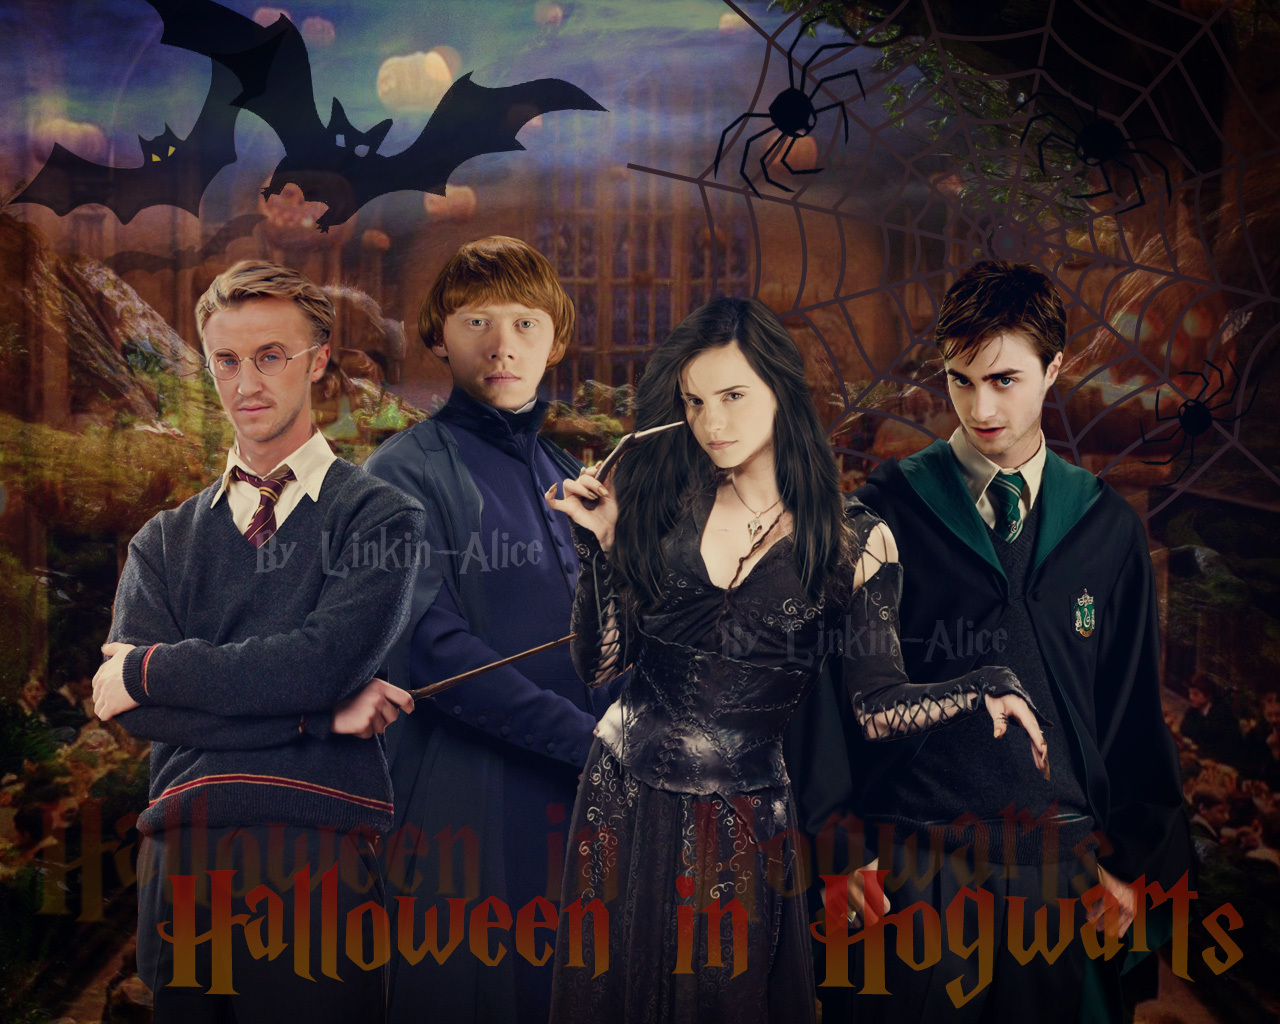 harry potter images halloween in hogwarts hd wallpaper and